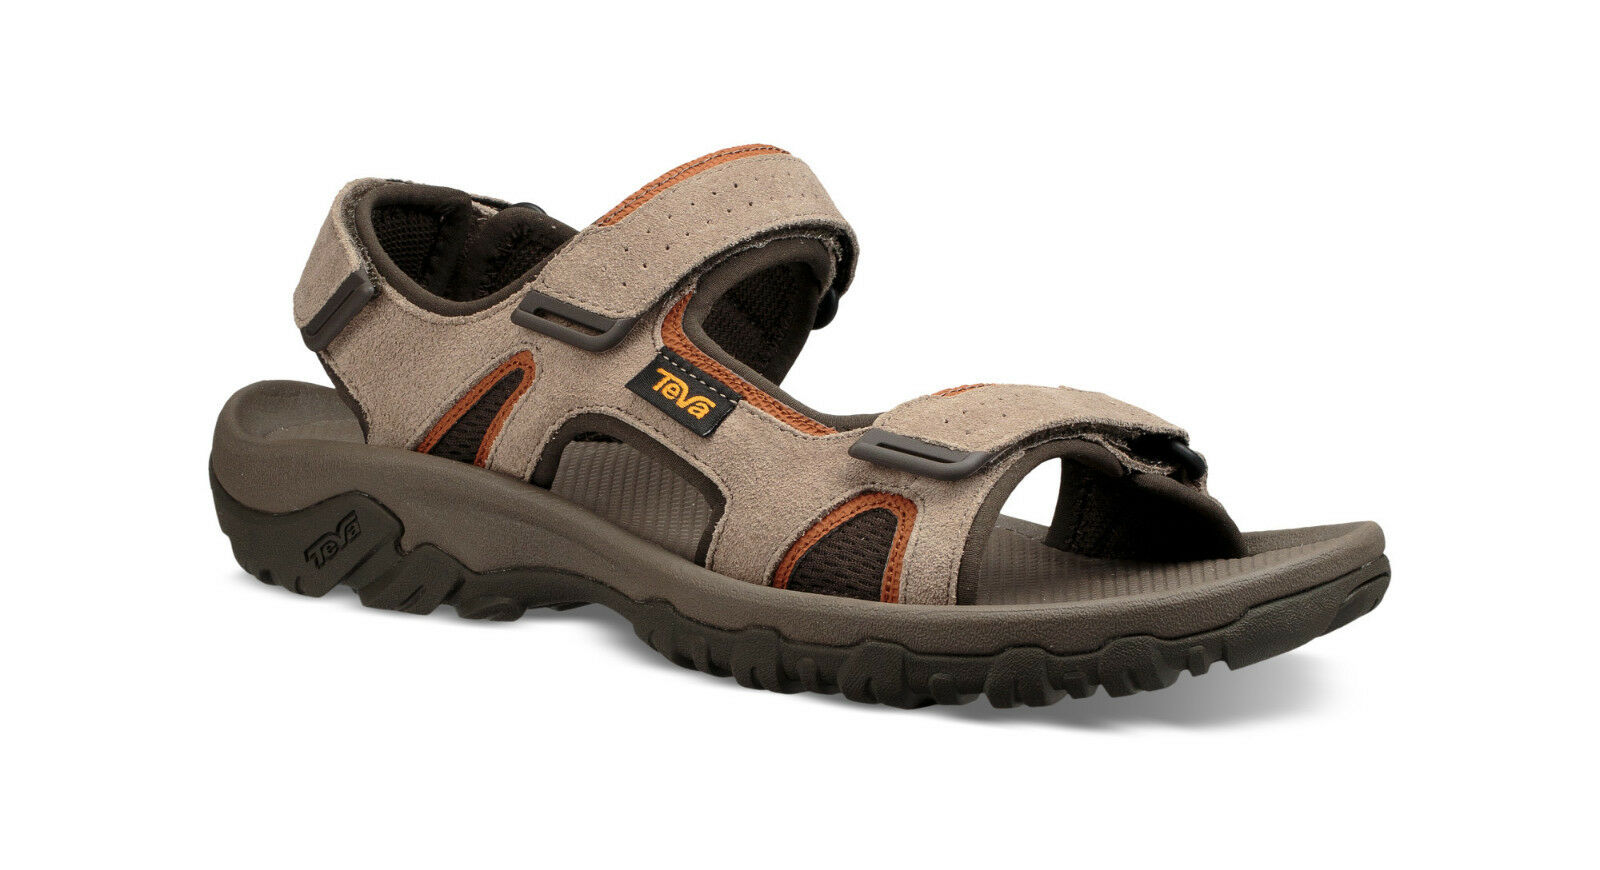 TEVA HIKING SANDALI UOMO MAN SANDALS TREKKING HIKING TEVA KATAVI 2 1019192 WALNUT e28af2